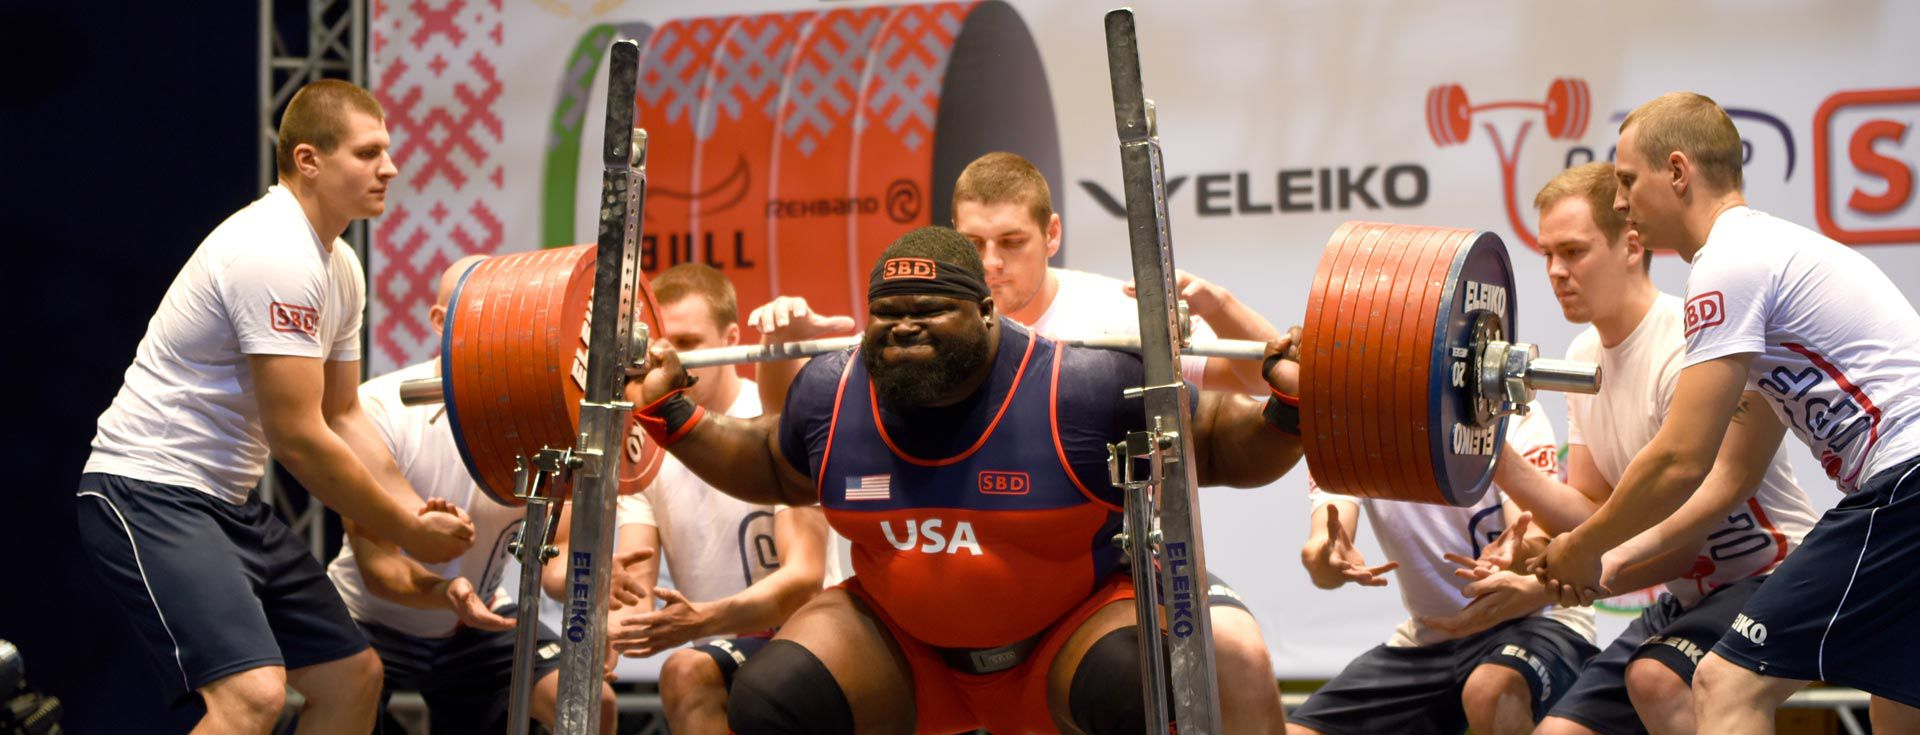 50 tips for competing at a powerlifting competition taylor s